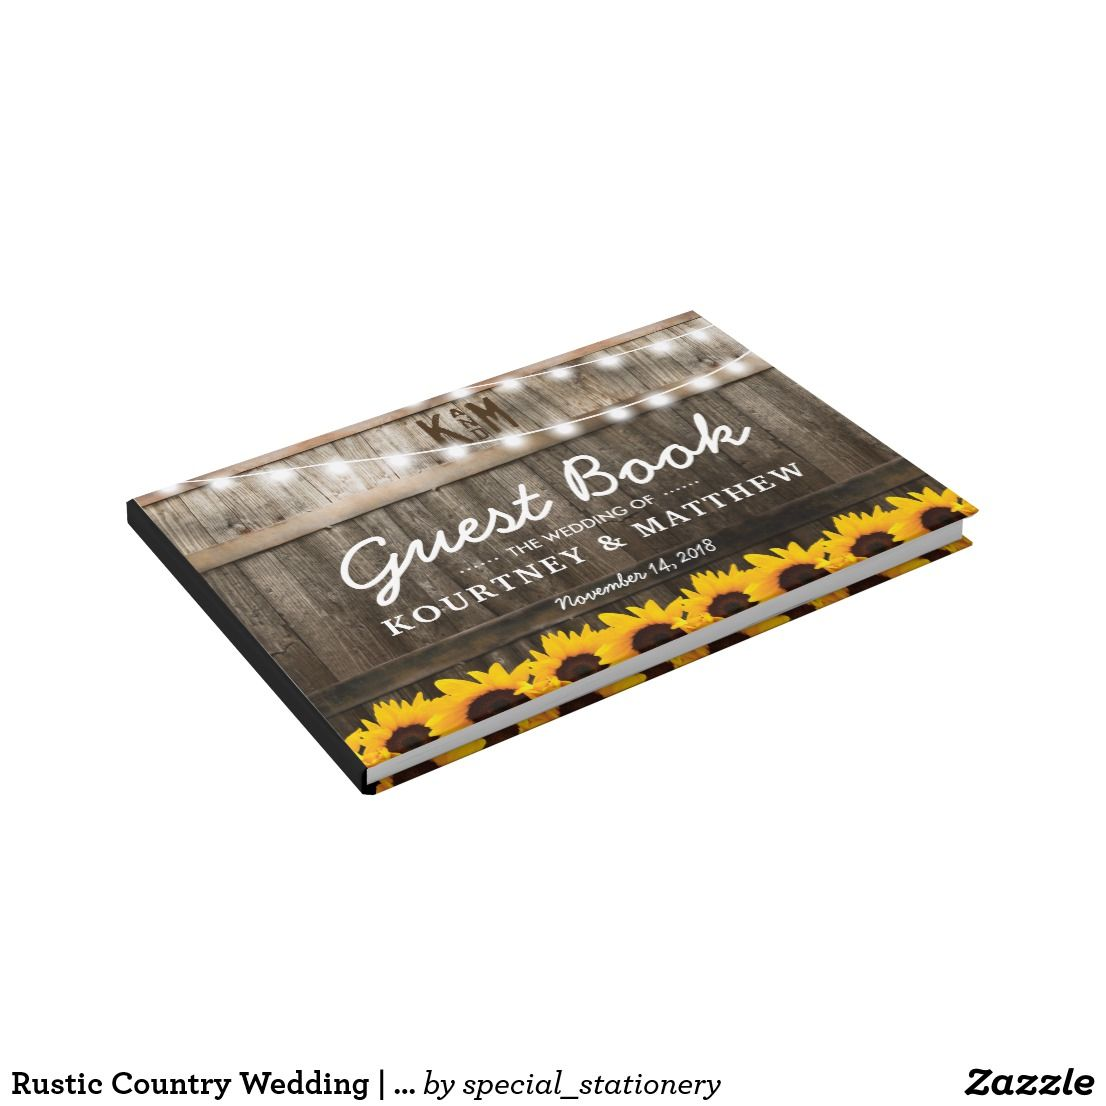 Wedding decorations yellow and gray november 2018 Rustic Country Wedding  Sunflower String Lights Guest Book  Rustic